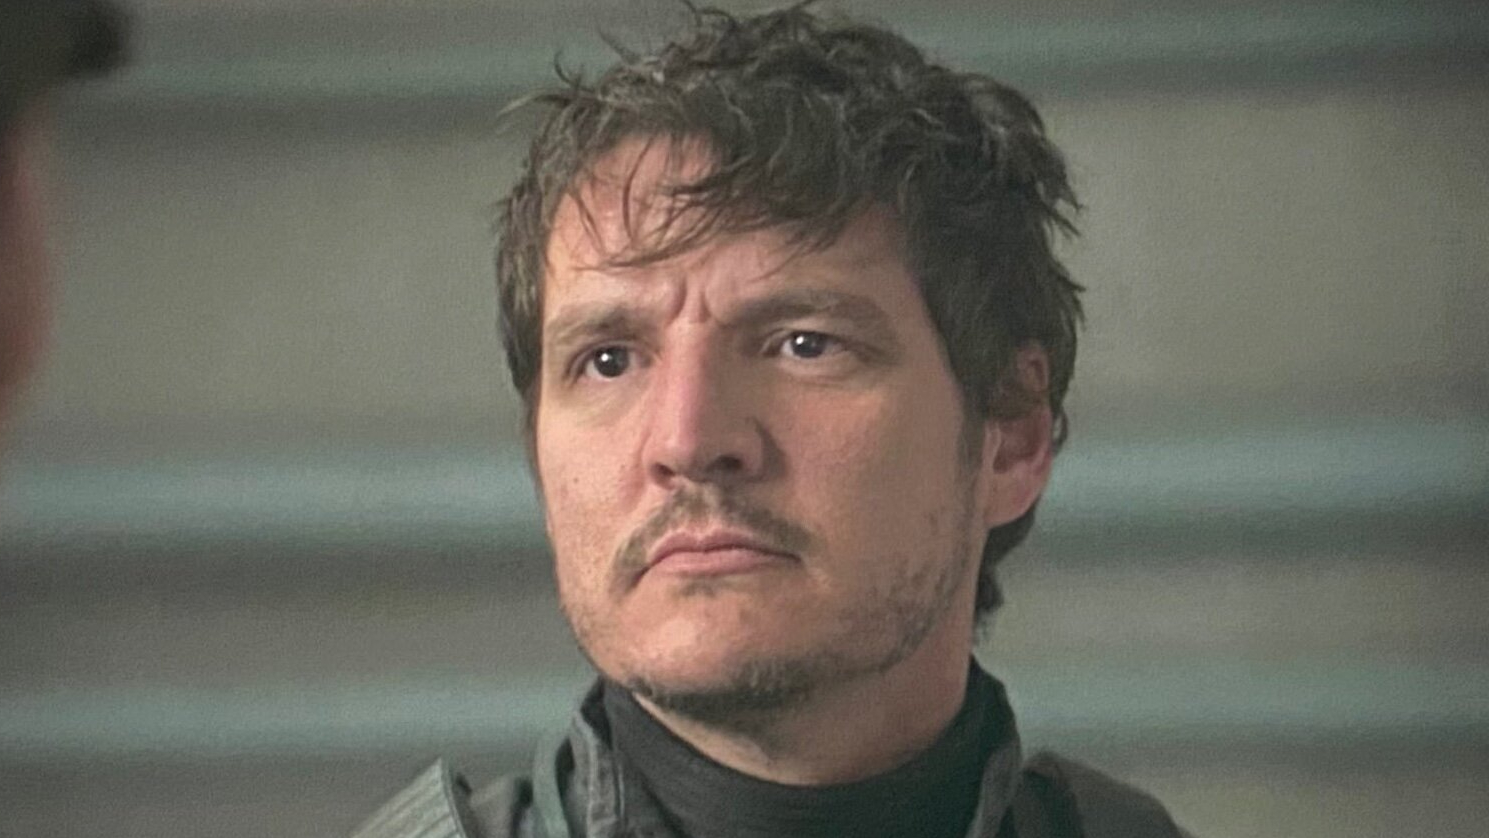 Fire Pedro Pascal Trending In Response To Gina Carano's Blacklisting